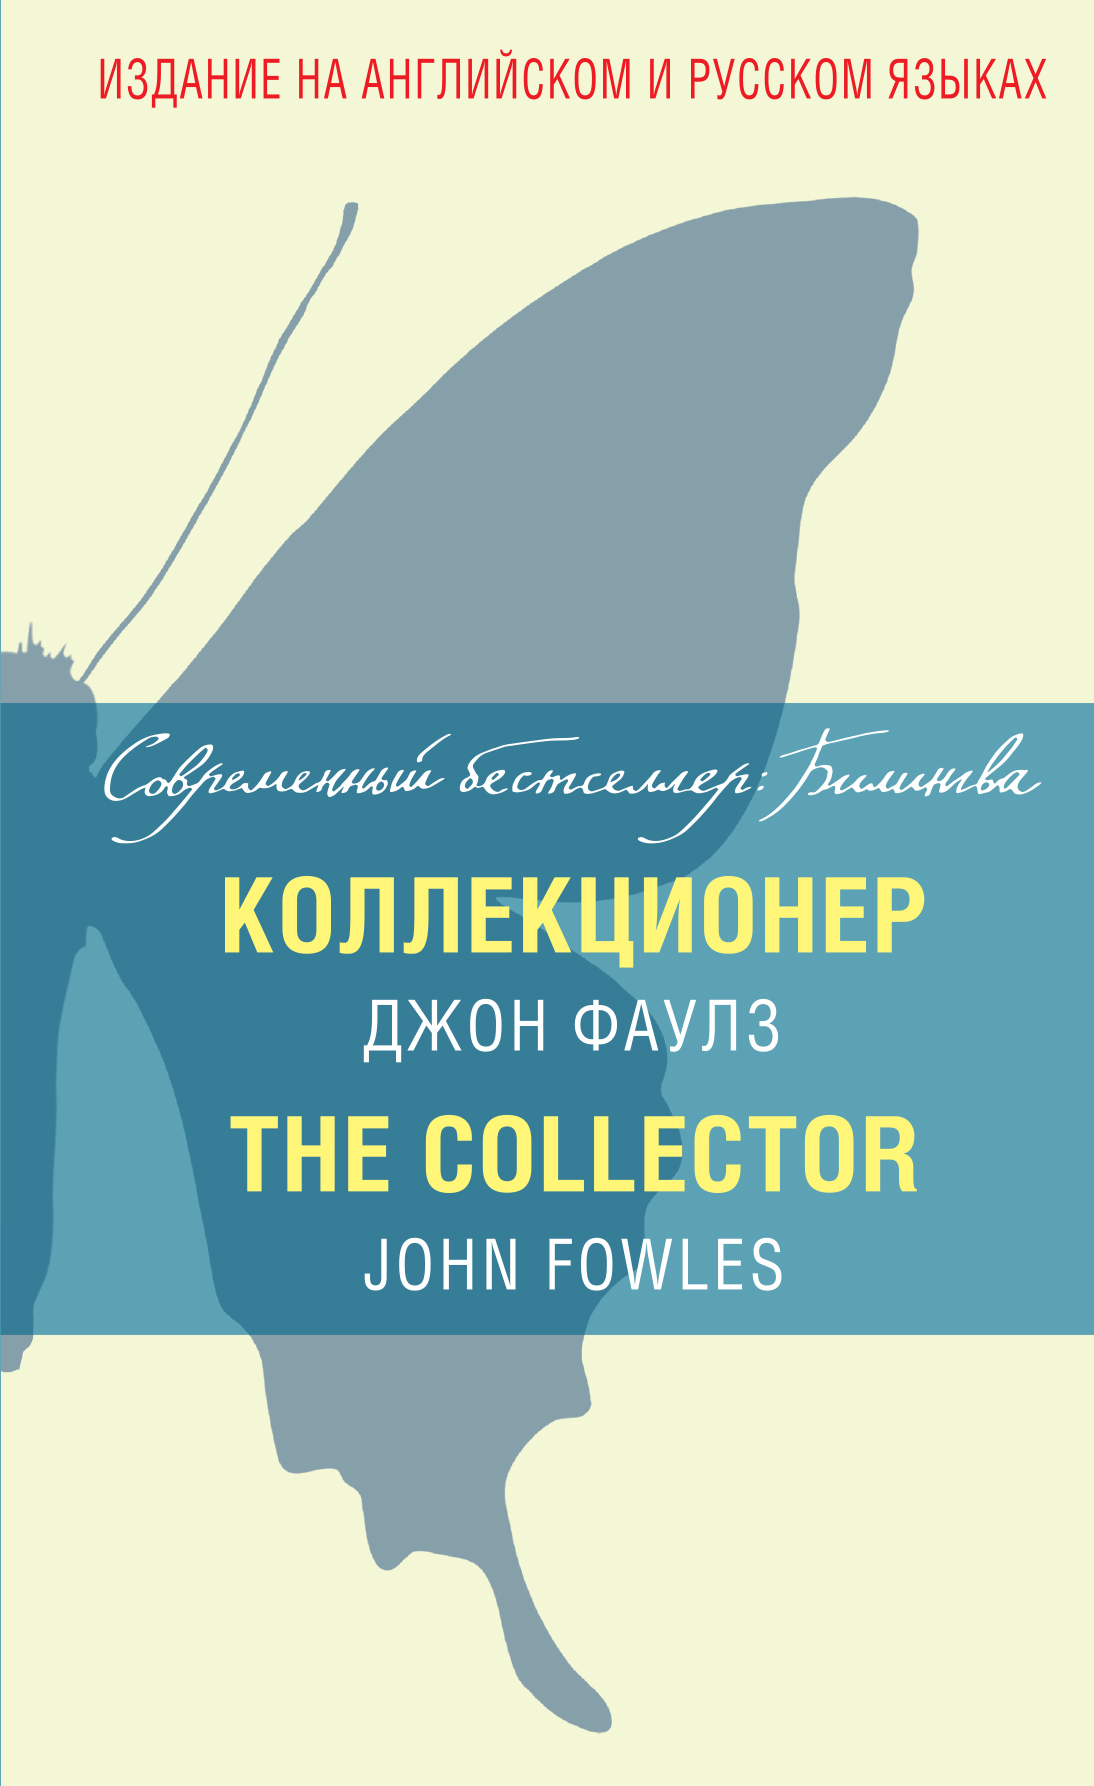 Фаулз Джон Коллекционер = The Collector - страница 0